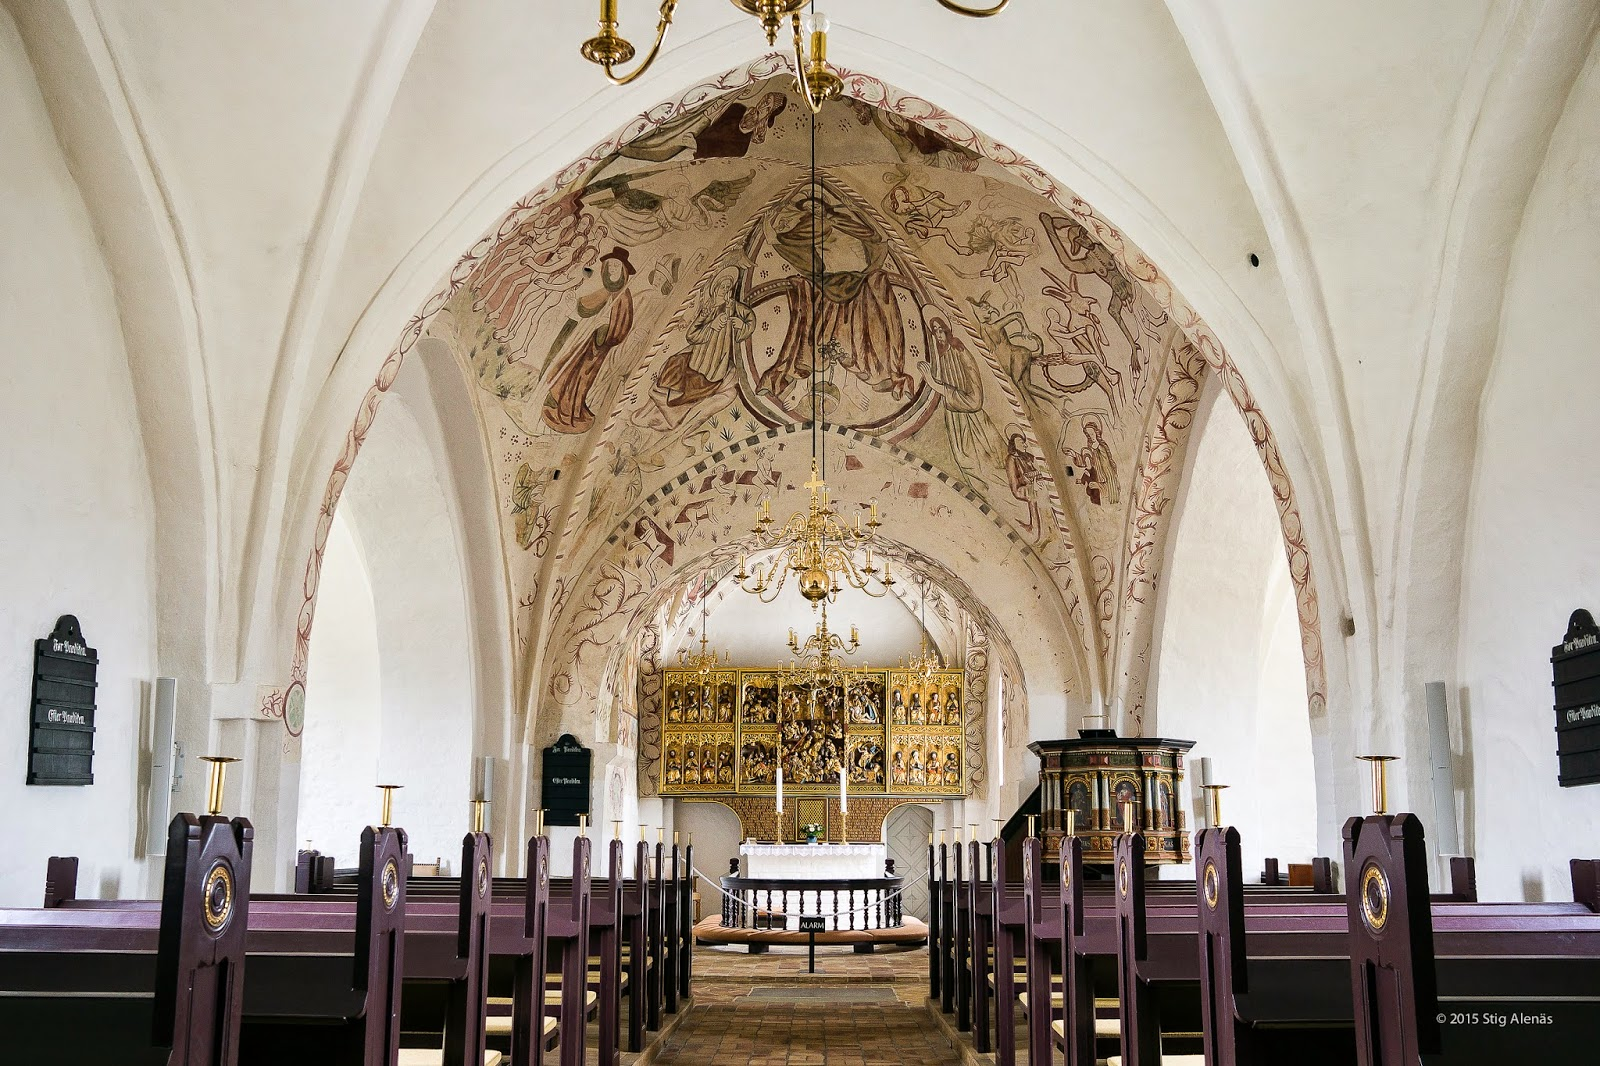 altar, architecture, building, christianity, church, denmark, editorial, frescoes, inside, interior, lutheran, religion, sanderum, scandinavian, white, worship